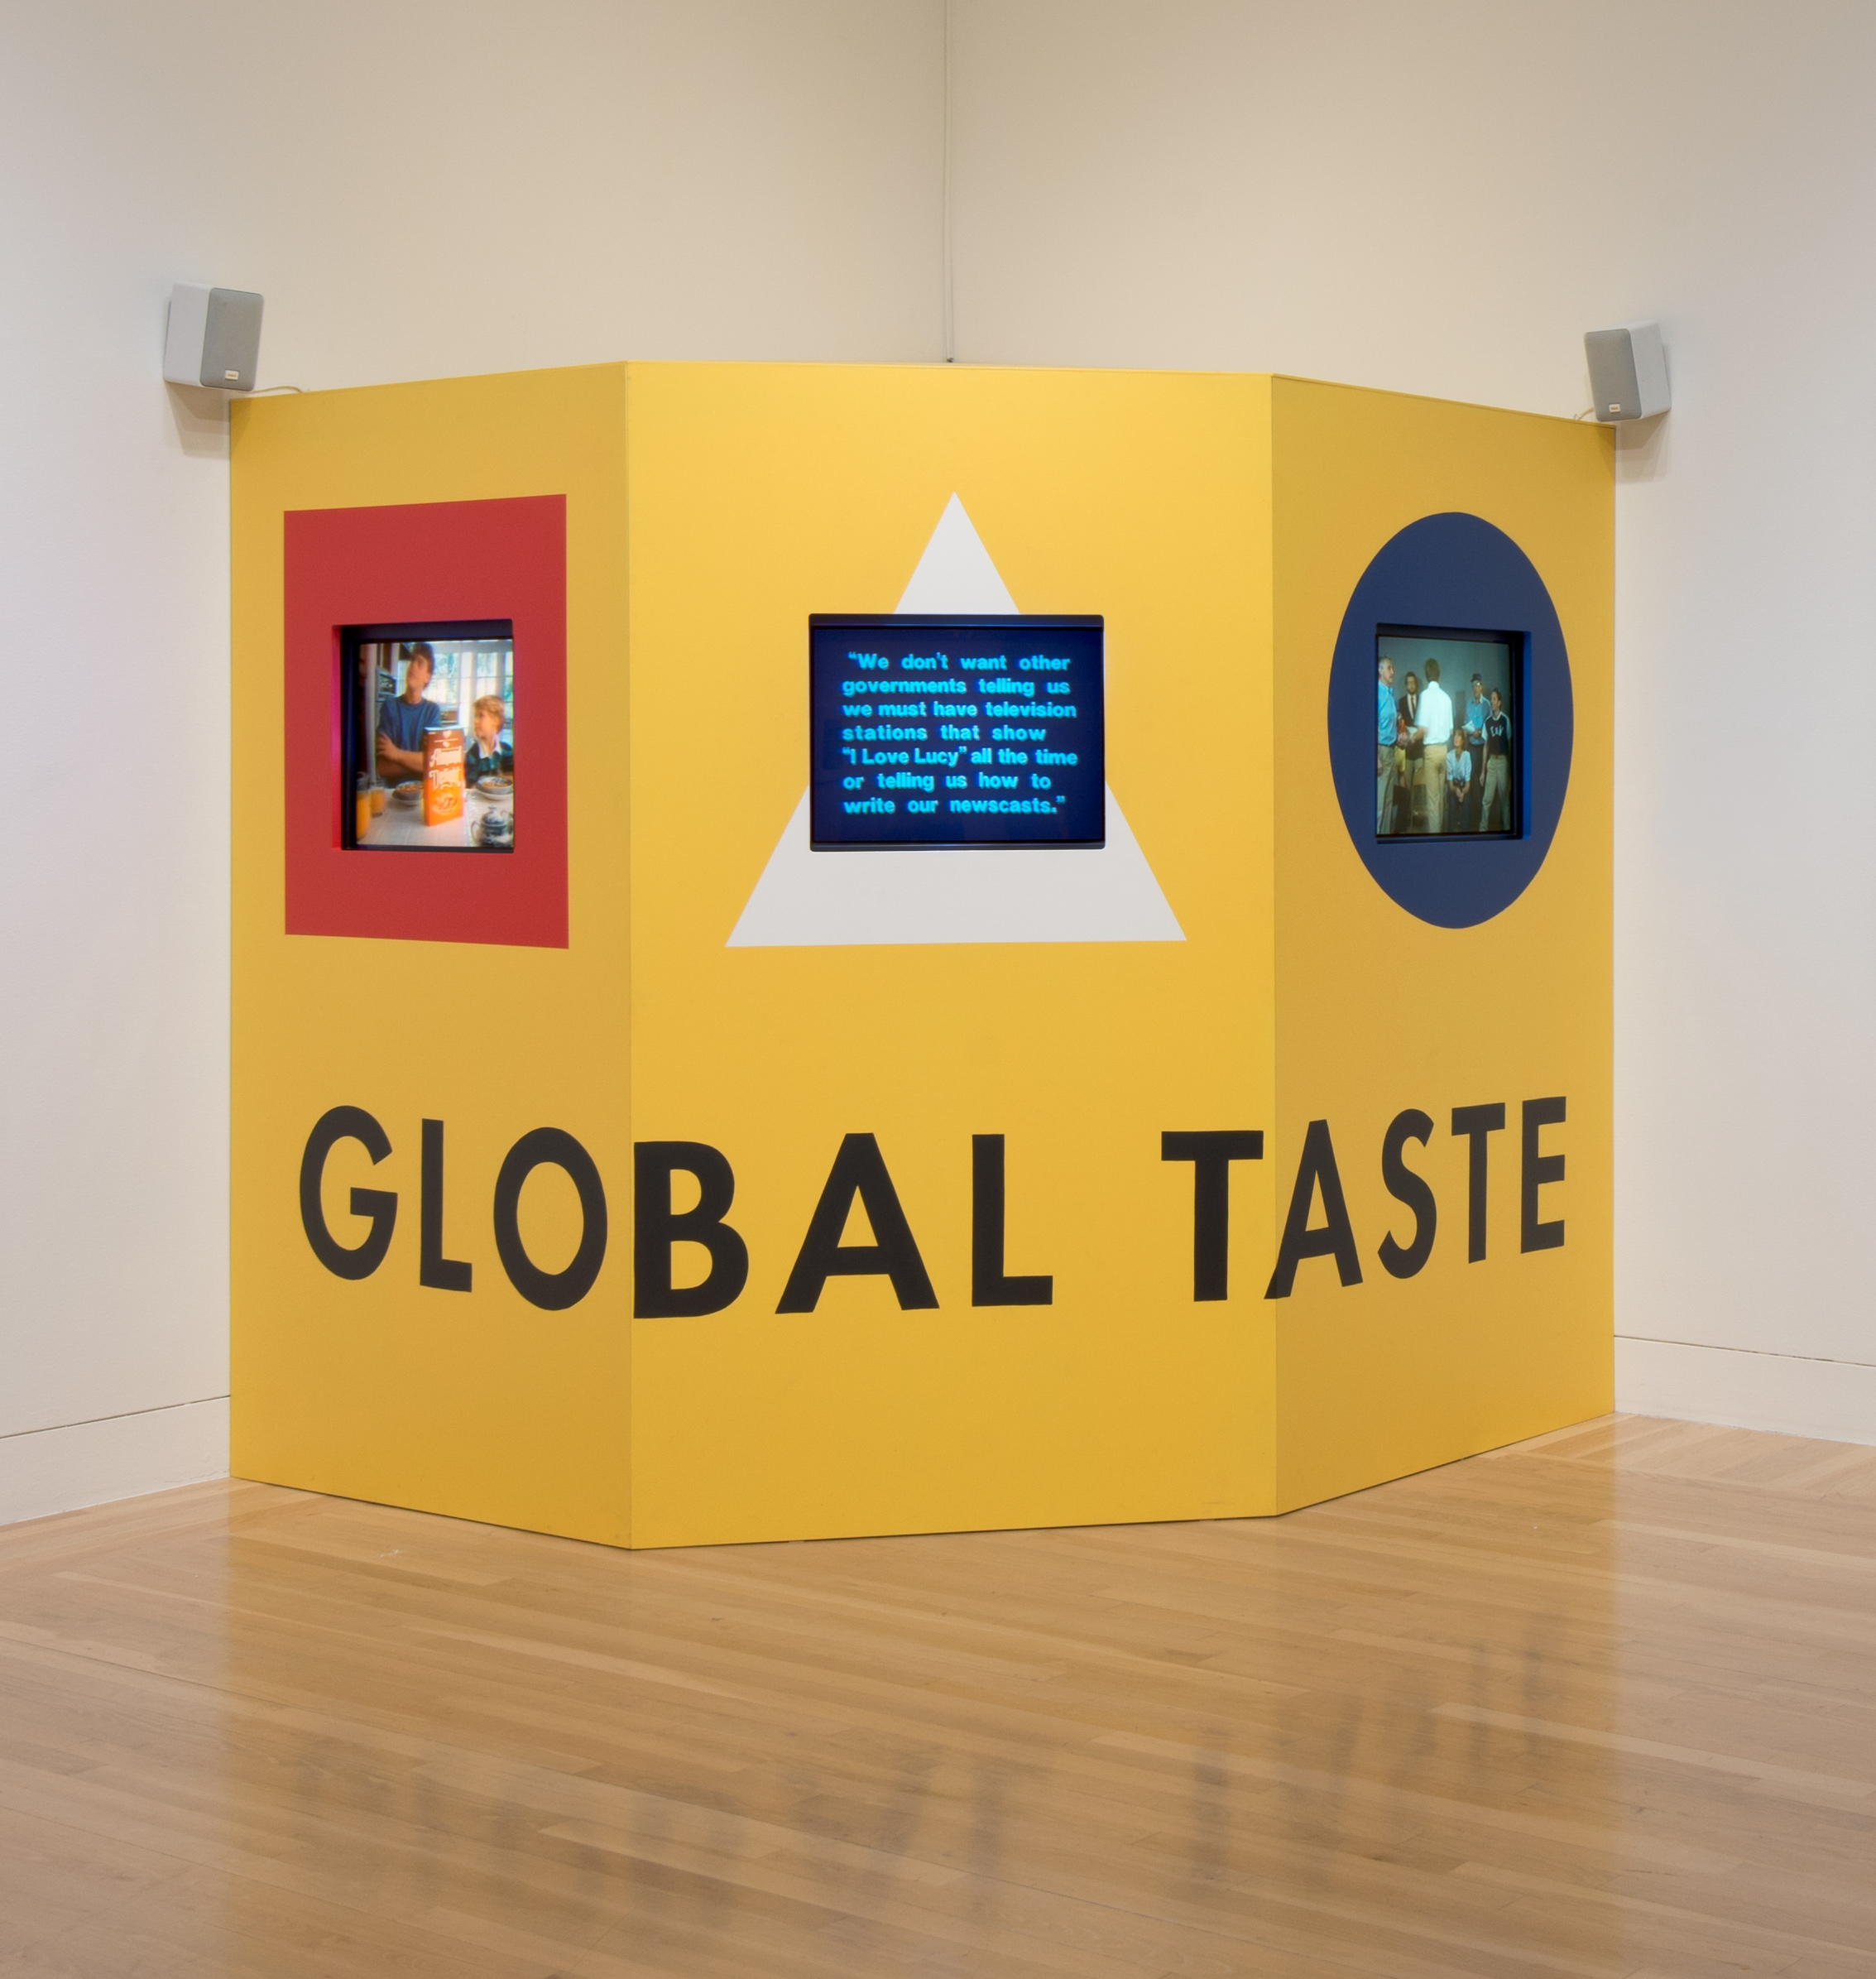 Global Taste: A Meal in Three Courses, by Martha Rosler, 1985